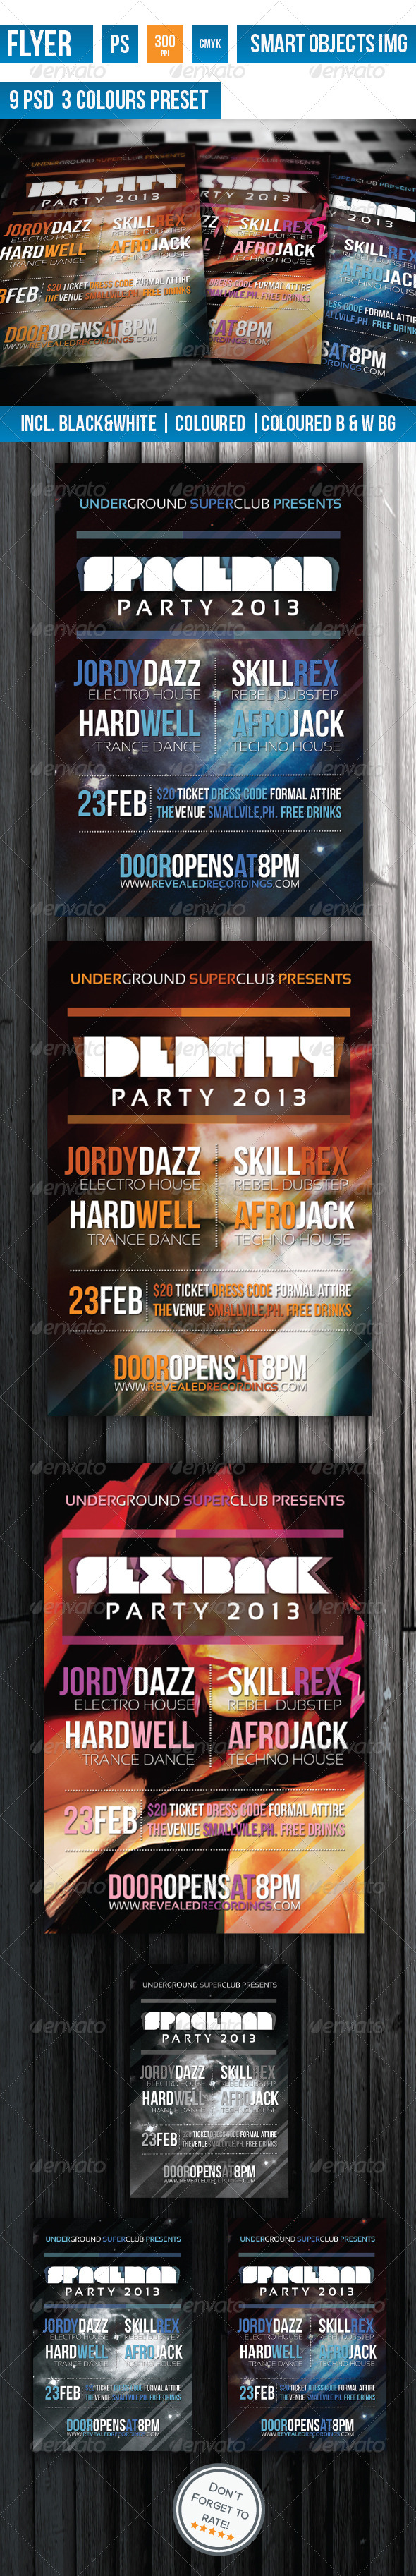 Identity Party Flyer - Clubs & Parties Events